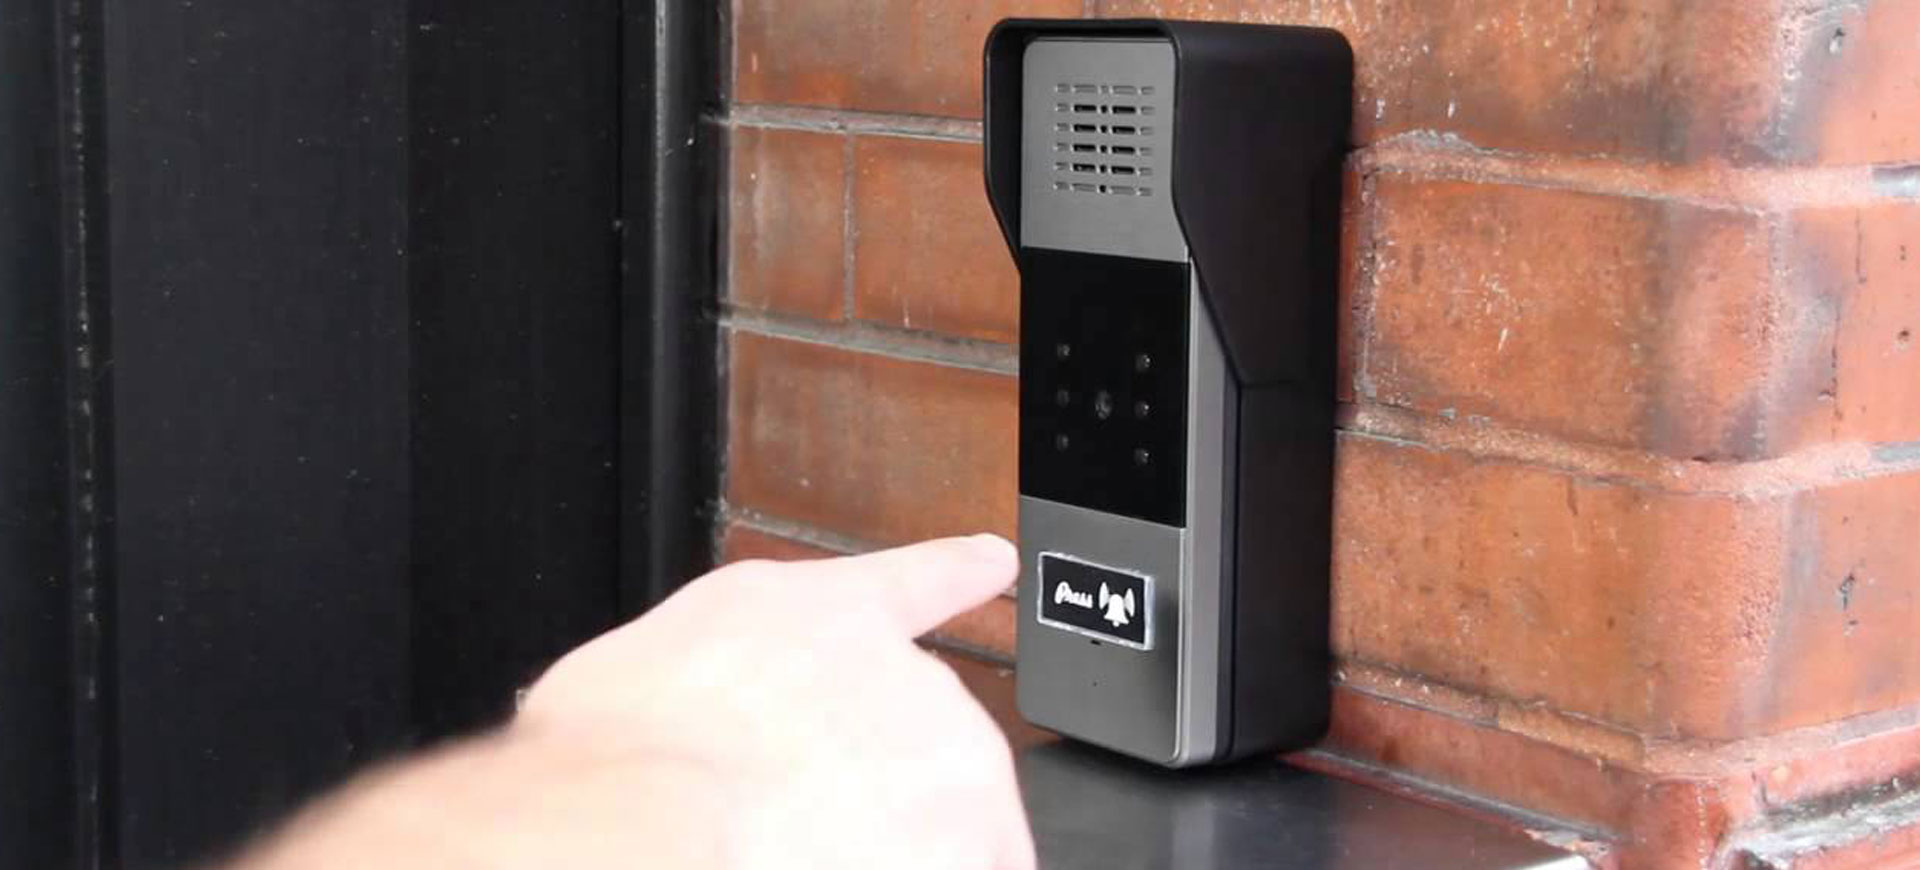 intercom repair and installation services Los Angeles